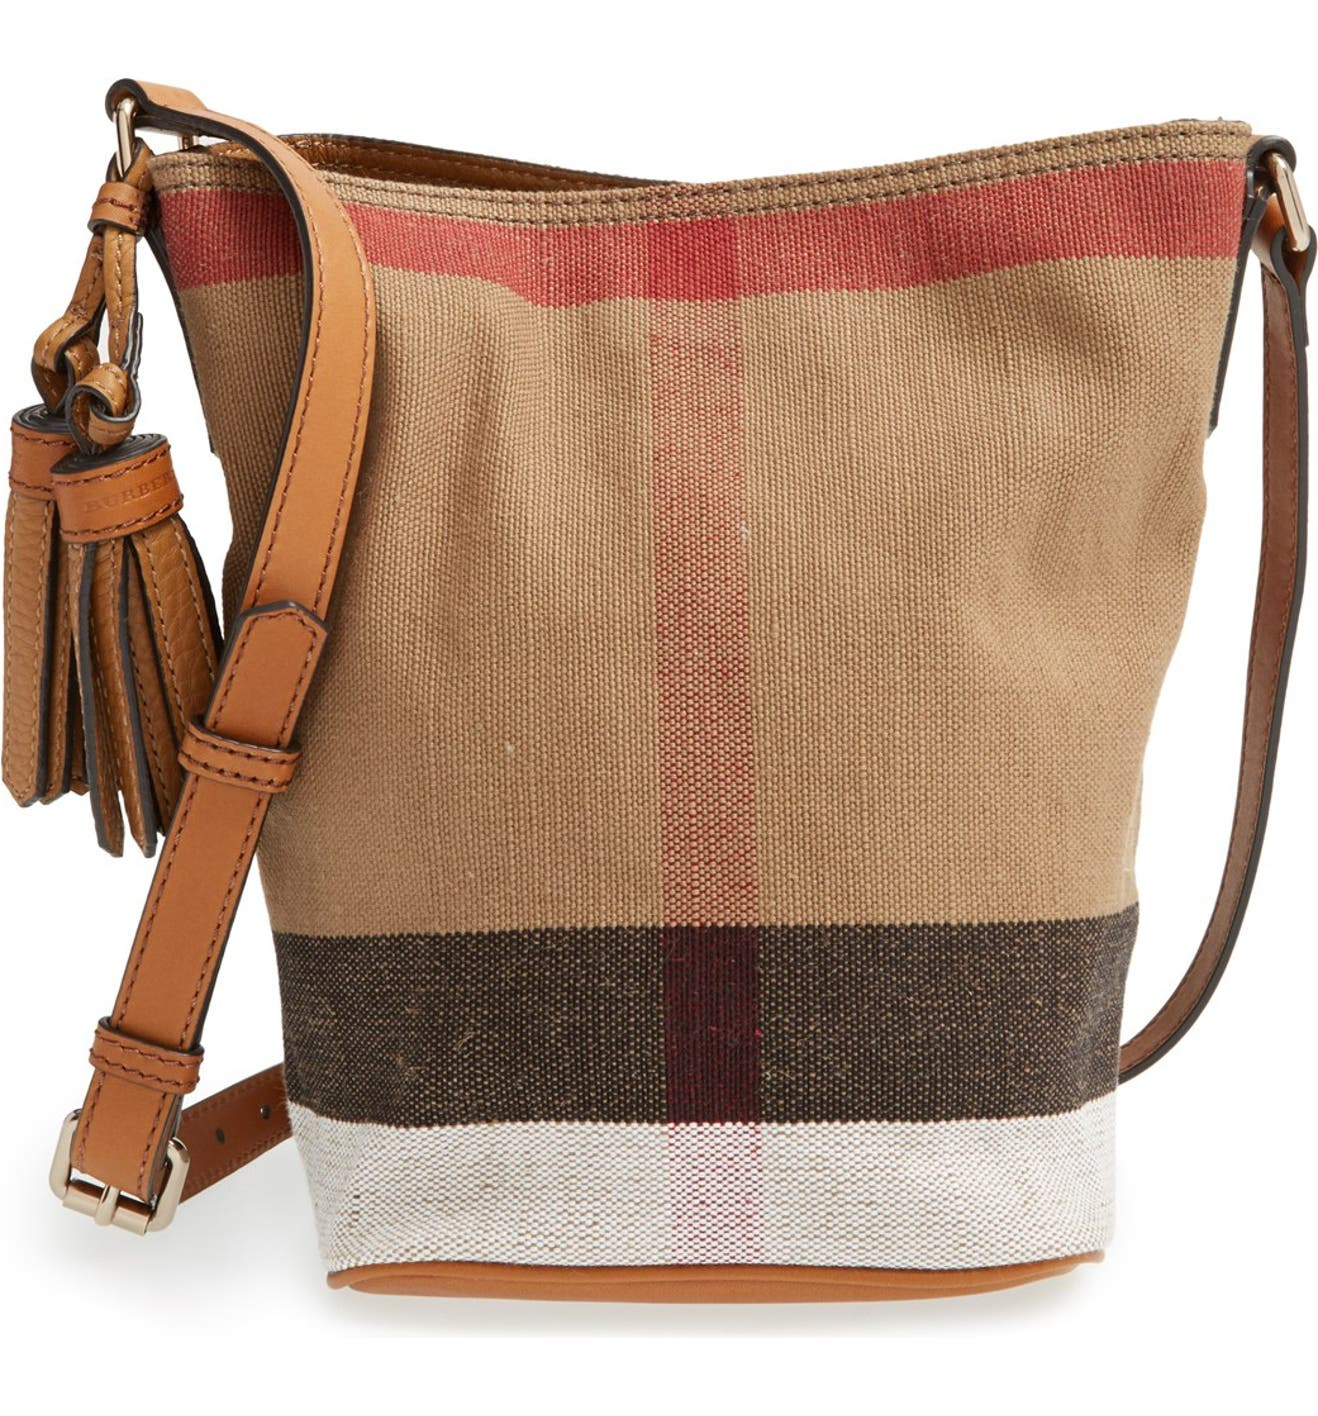 Burberry Brit  Mini Ashby  Canvas Check Crossbody Bucket Bag   Nordstrom 047f5c5814